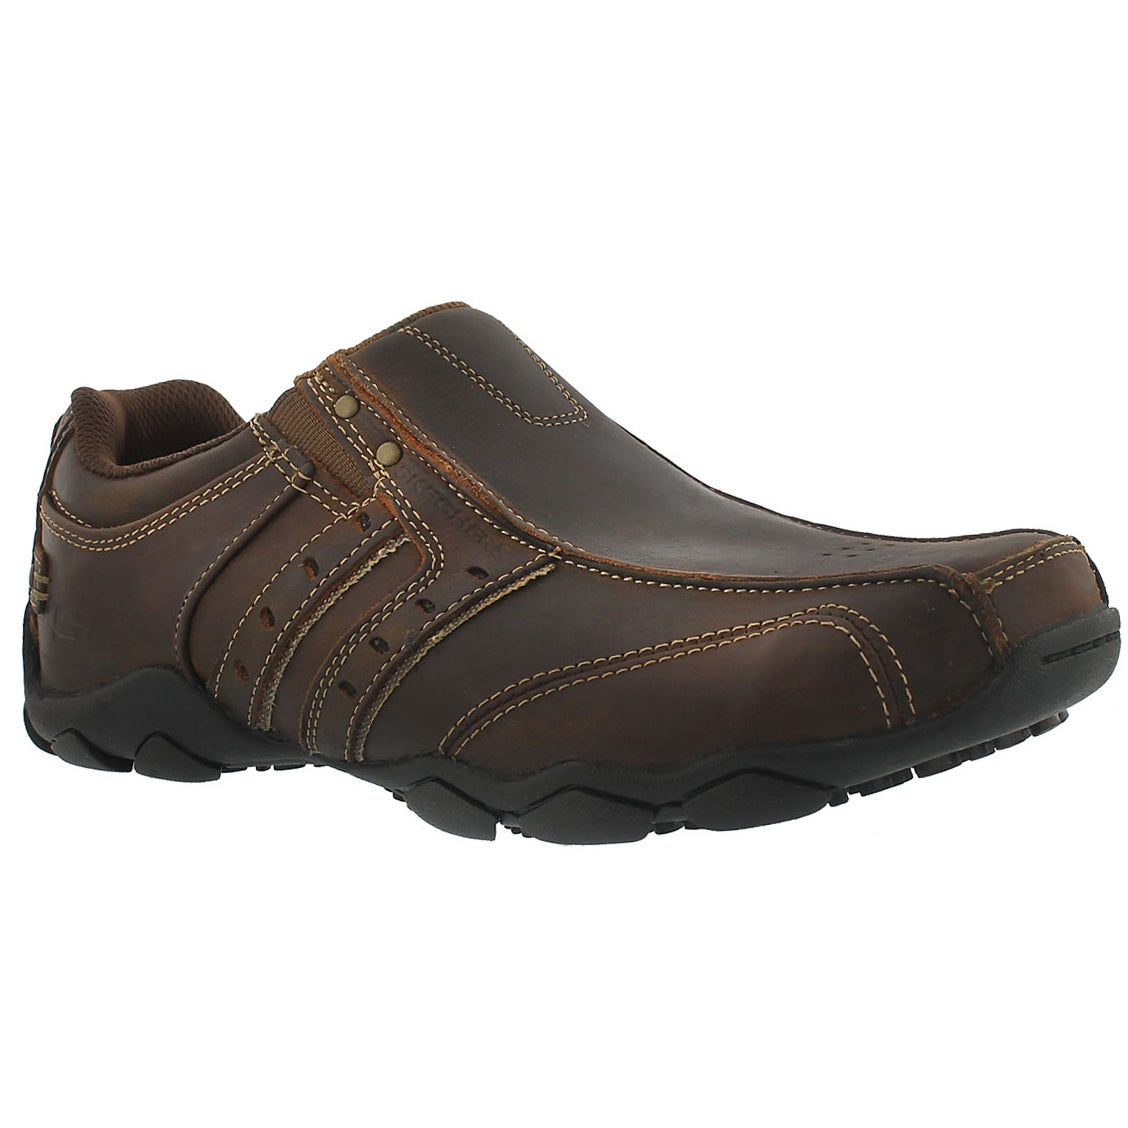 Mns Heisman dk brown twin gore slip-on